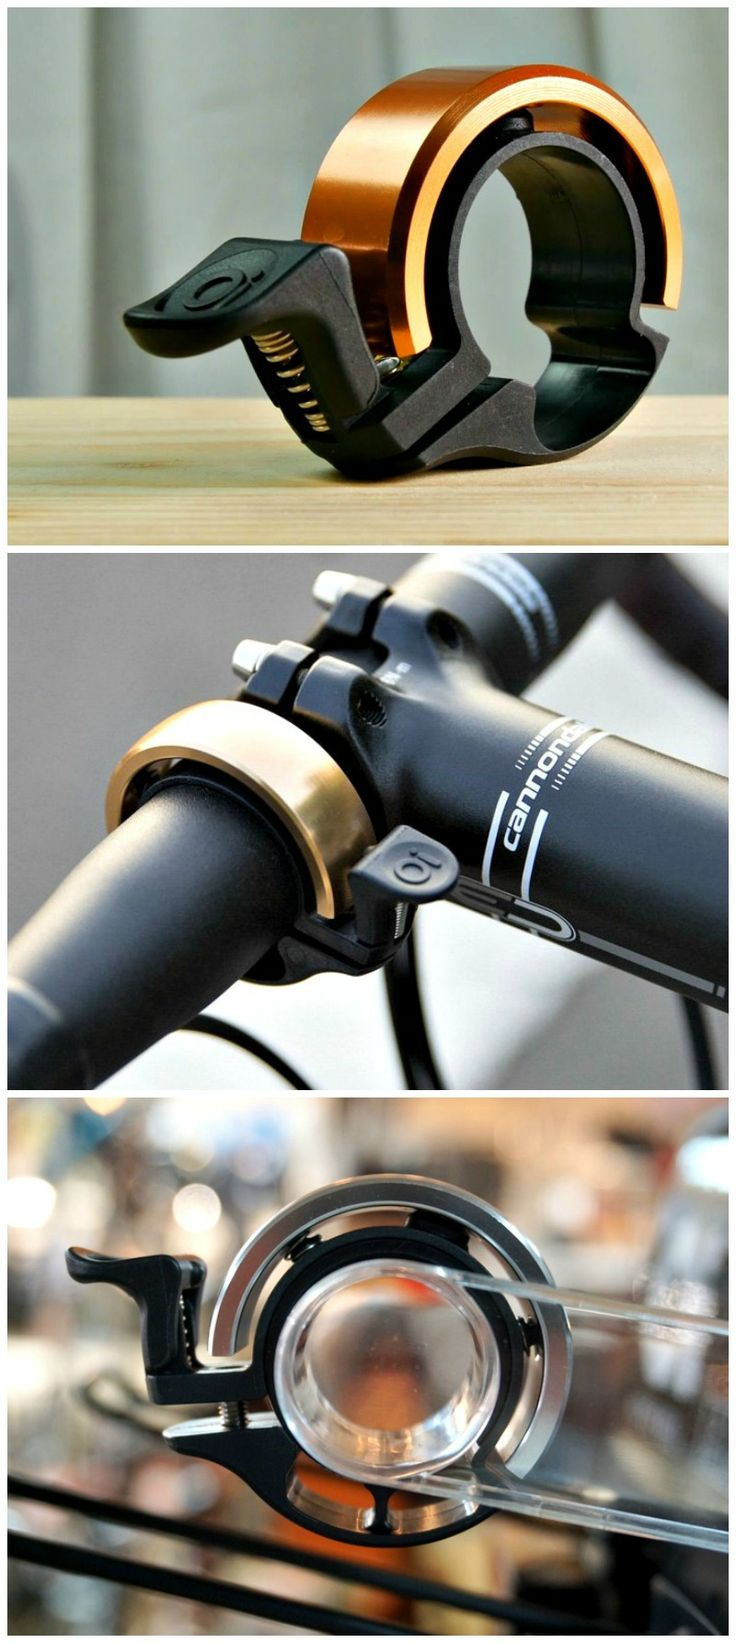 Knog Oi is the revolutionary new minimalist bike bell that is designed to blend in with the handlebar instead of sticking out like an ugly blister.